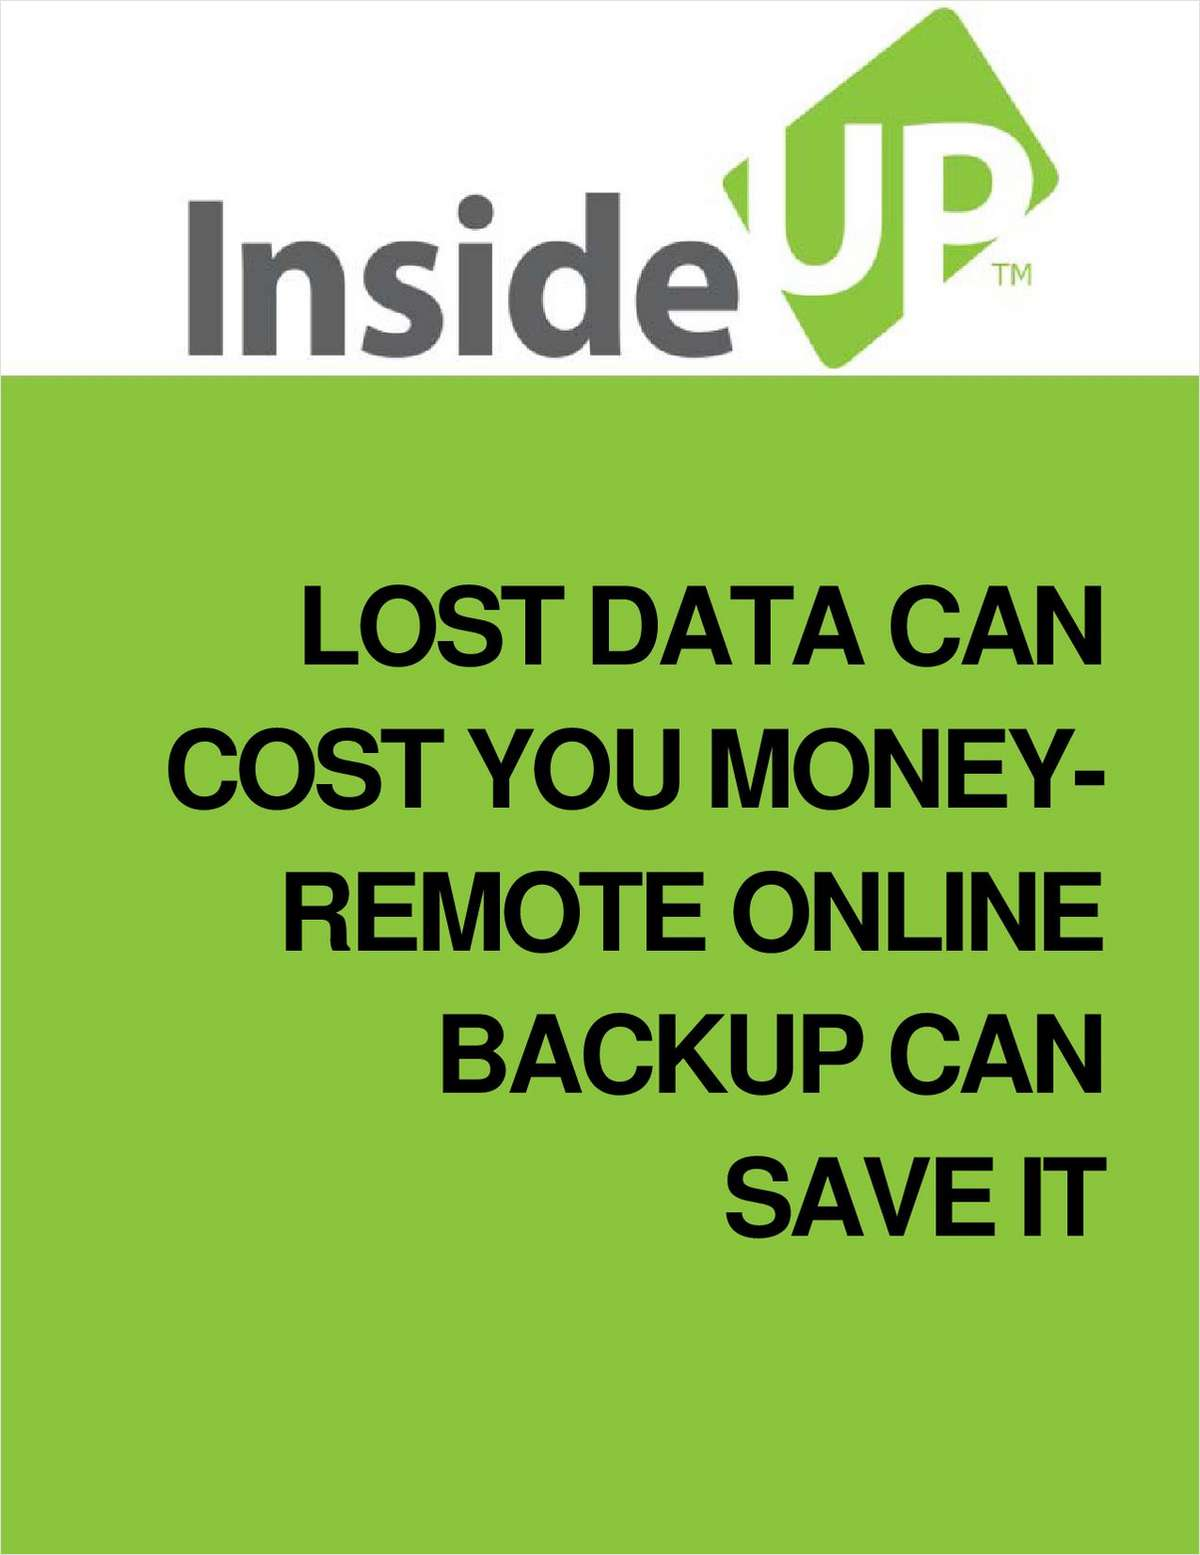 Lost Data Can Cost You Money - Remote Online Backup Can Save It